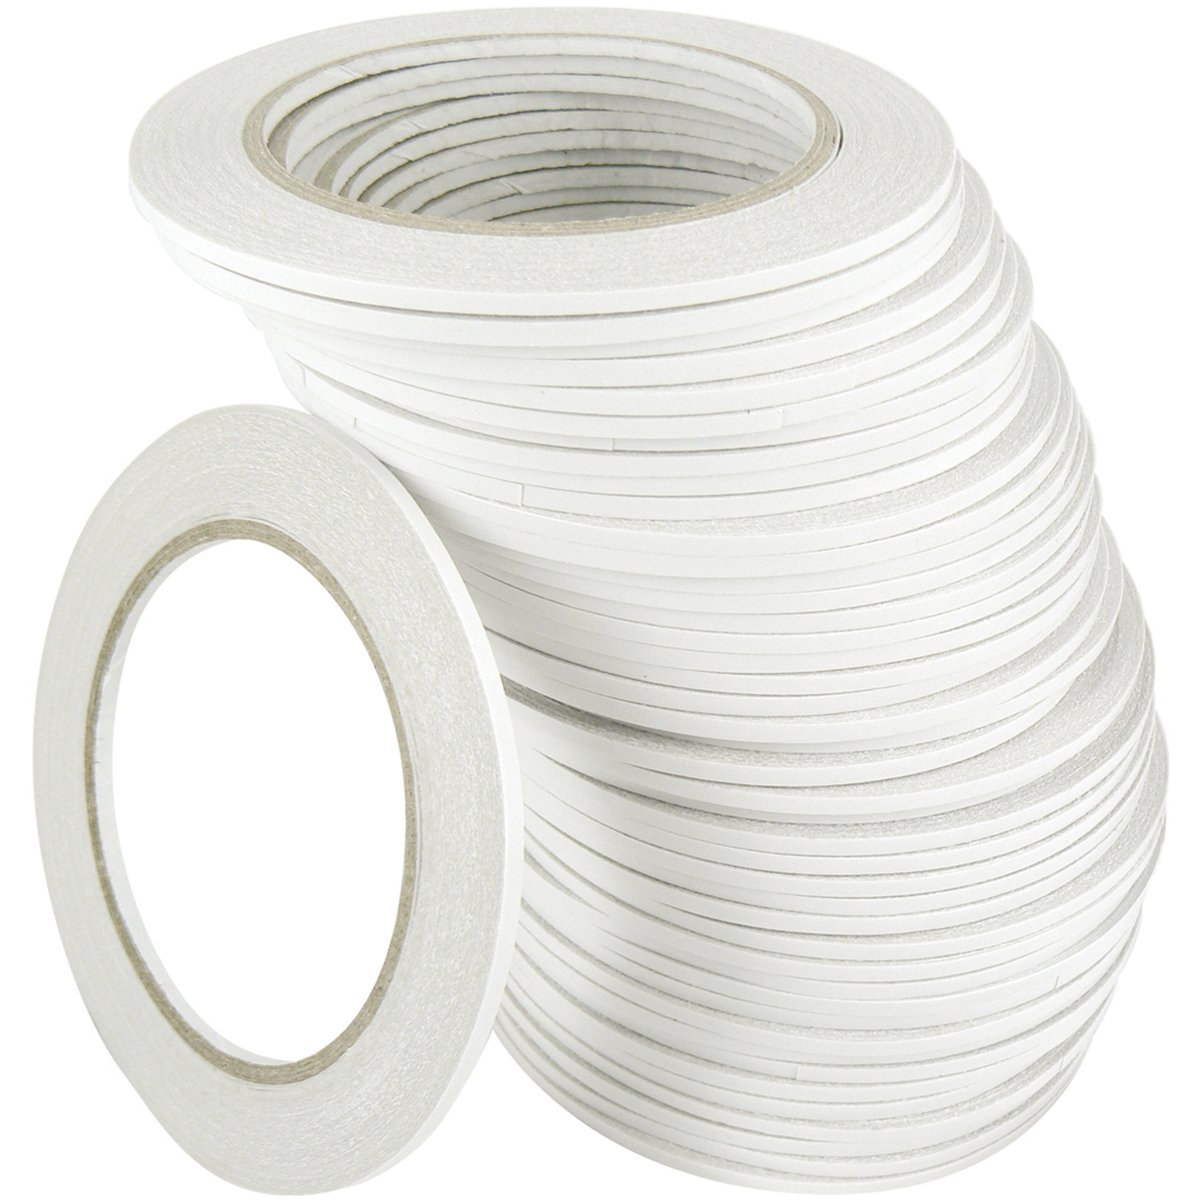 Couture Creations Double-Sided Tape 3mmx25m Roll